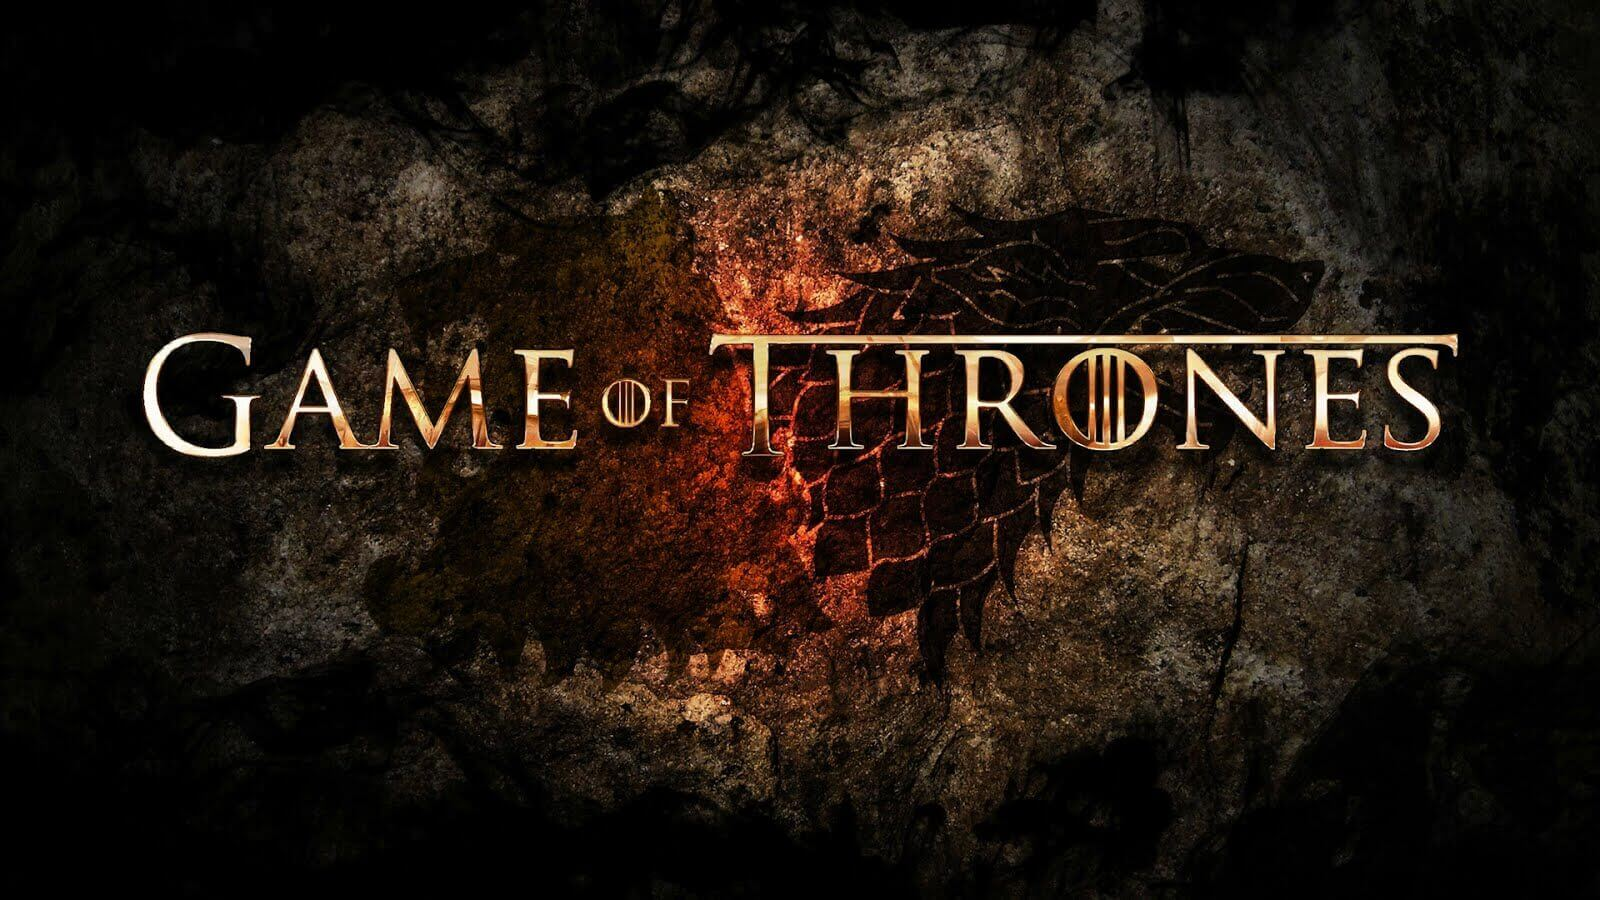 Game of Thrones, Nội dung của xèng Game of Thrones